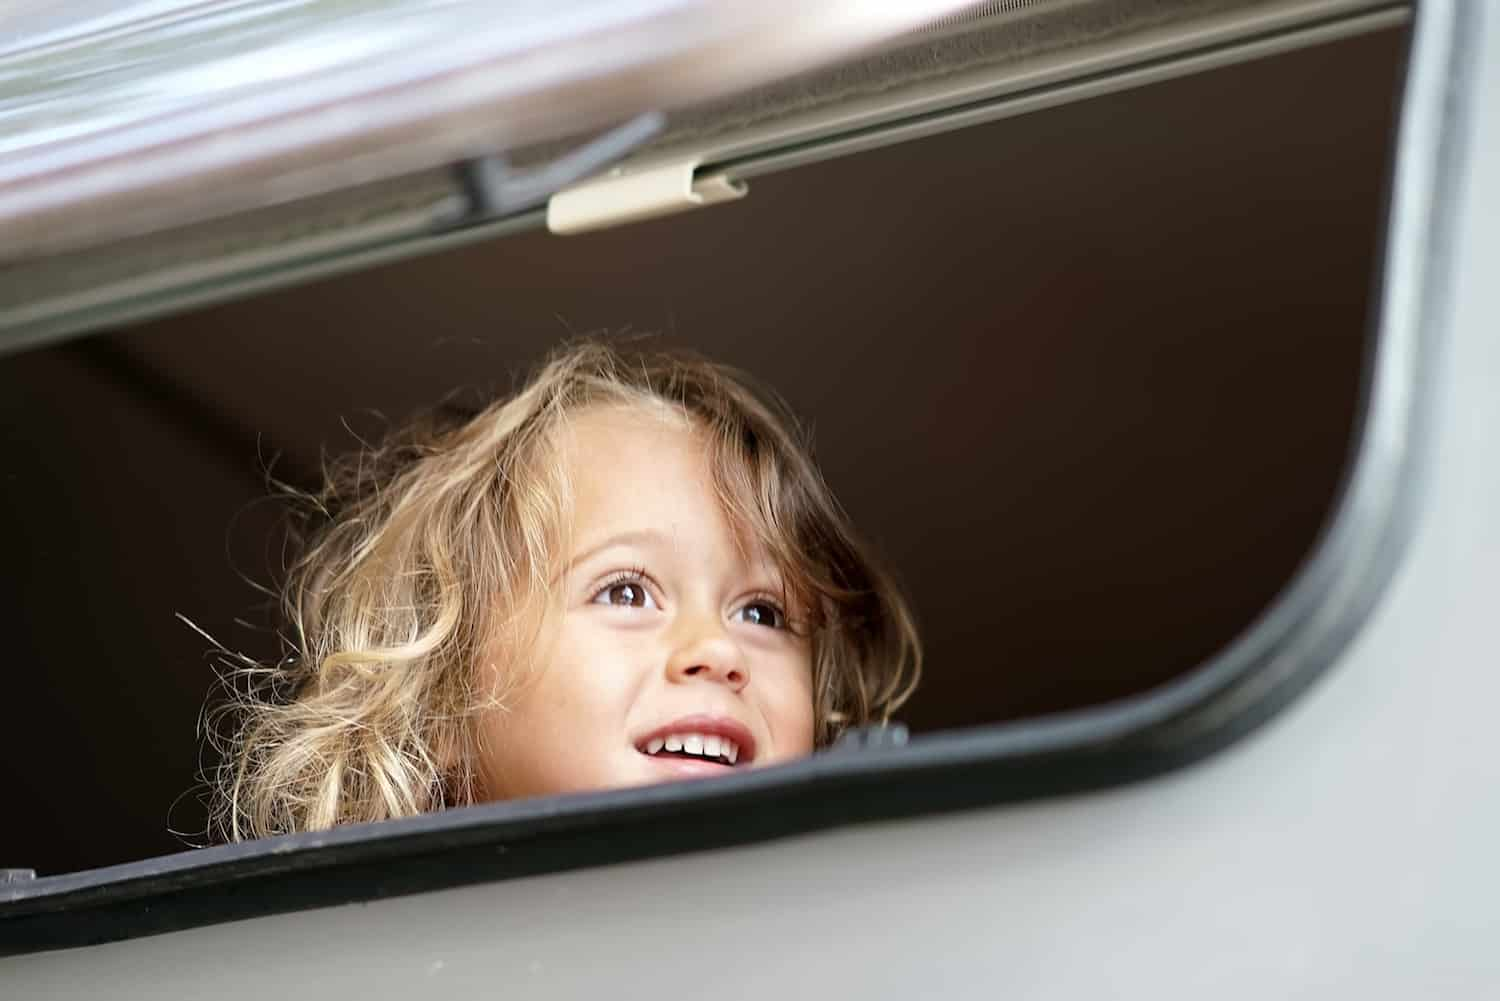 the little girl looks out happy of the camper window